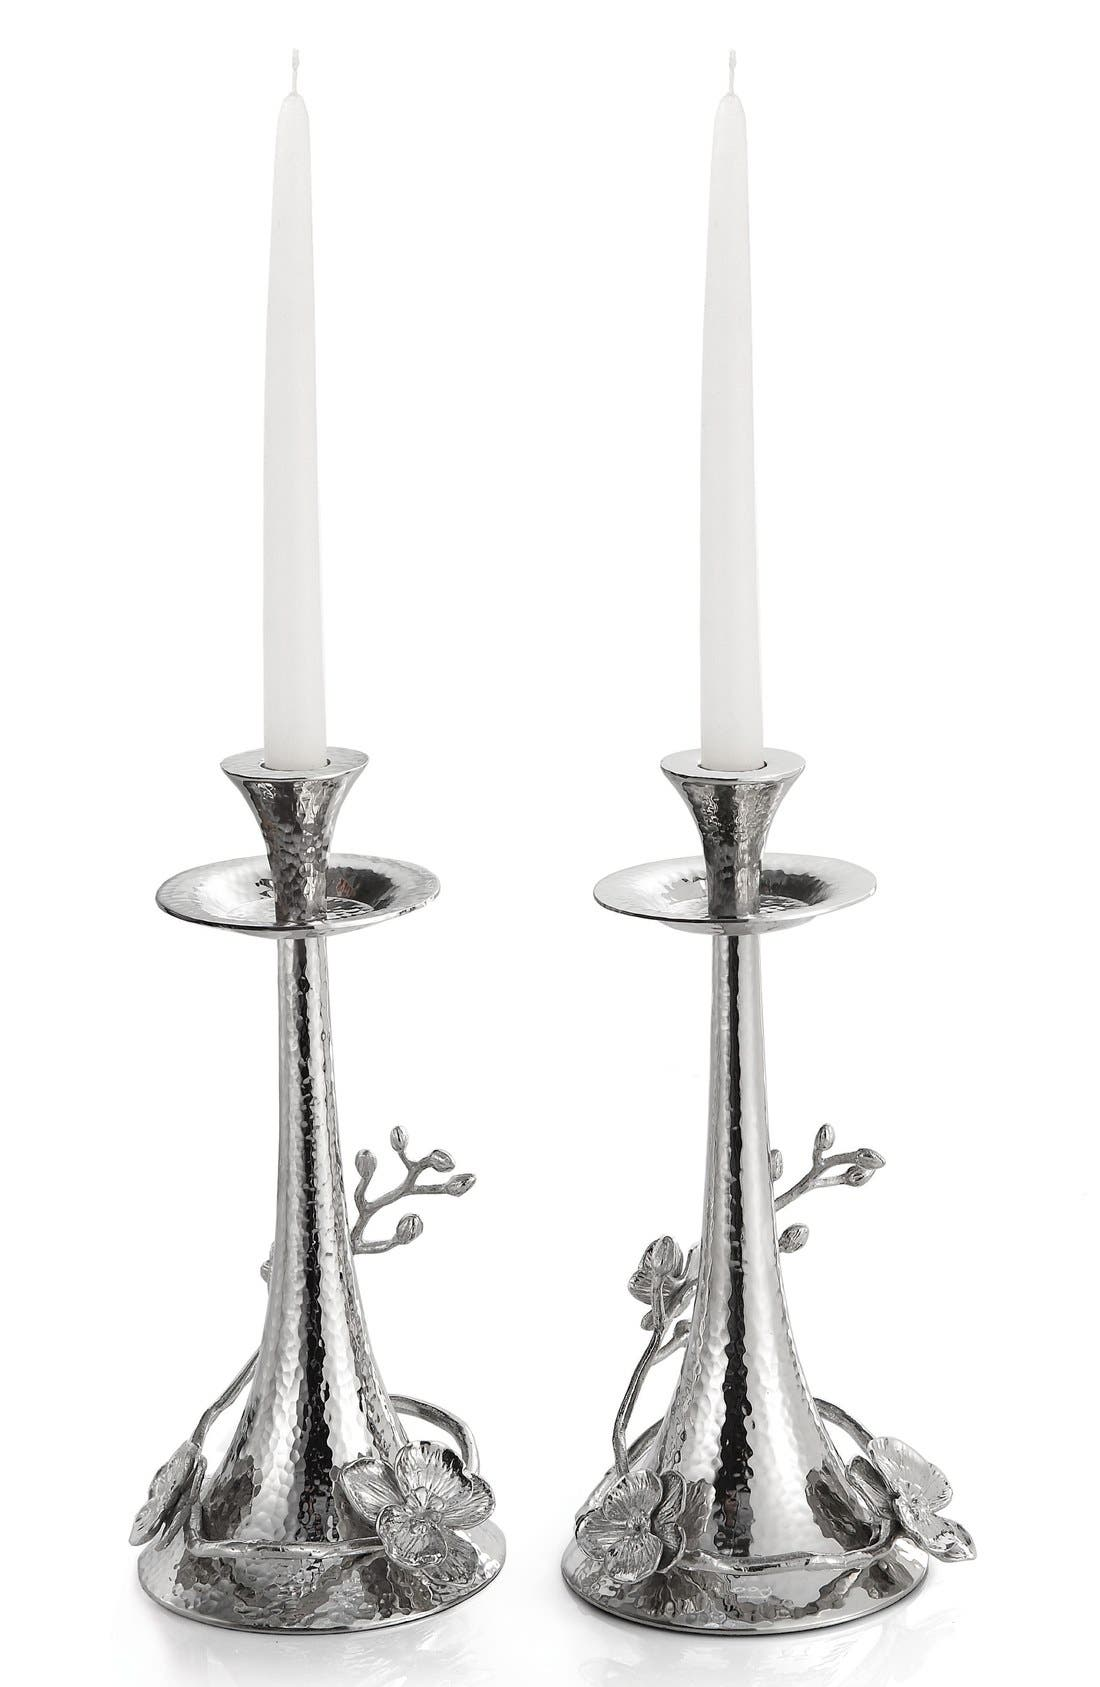 Main Image - Michael Aram 'White Orchid' Candle Holders (Set of 2)